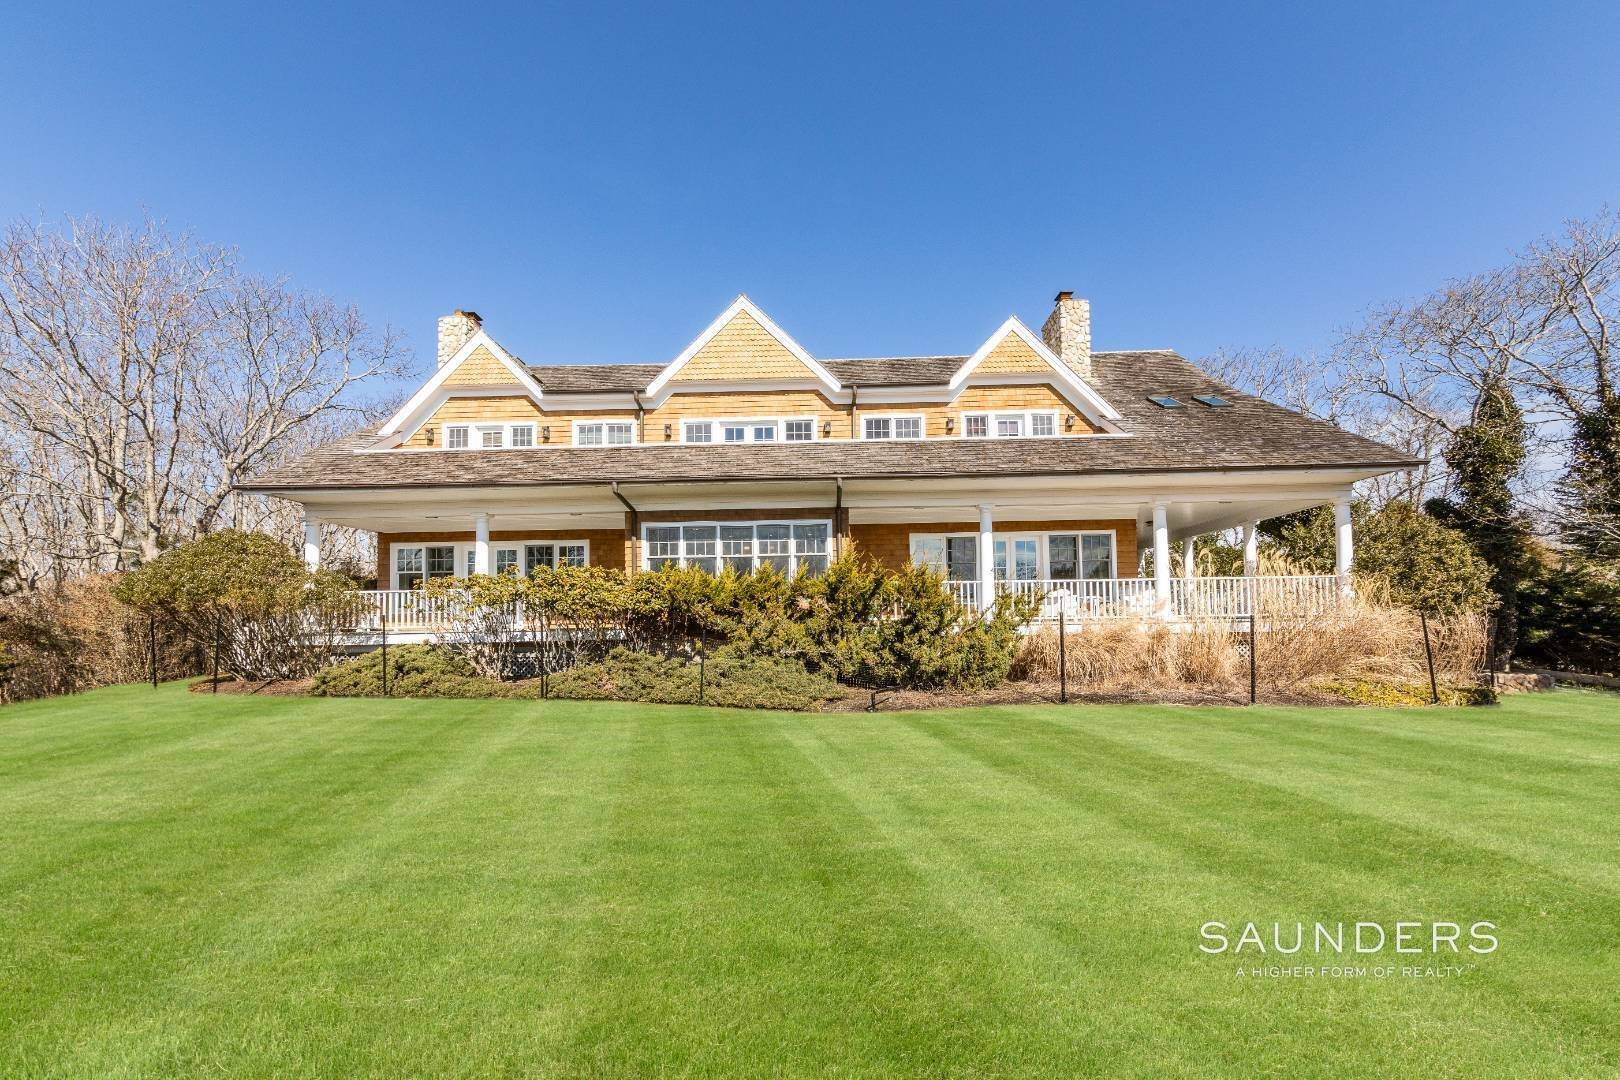 Single Family Homes for Sale at Magnificent Montauk With Ocean Views 16 Fir Lane, Montauk, East Hampton Town, NY 11954